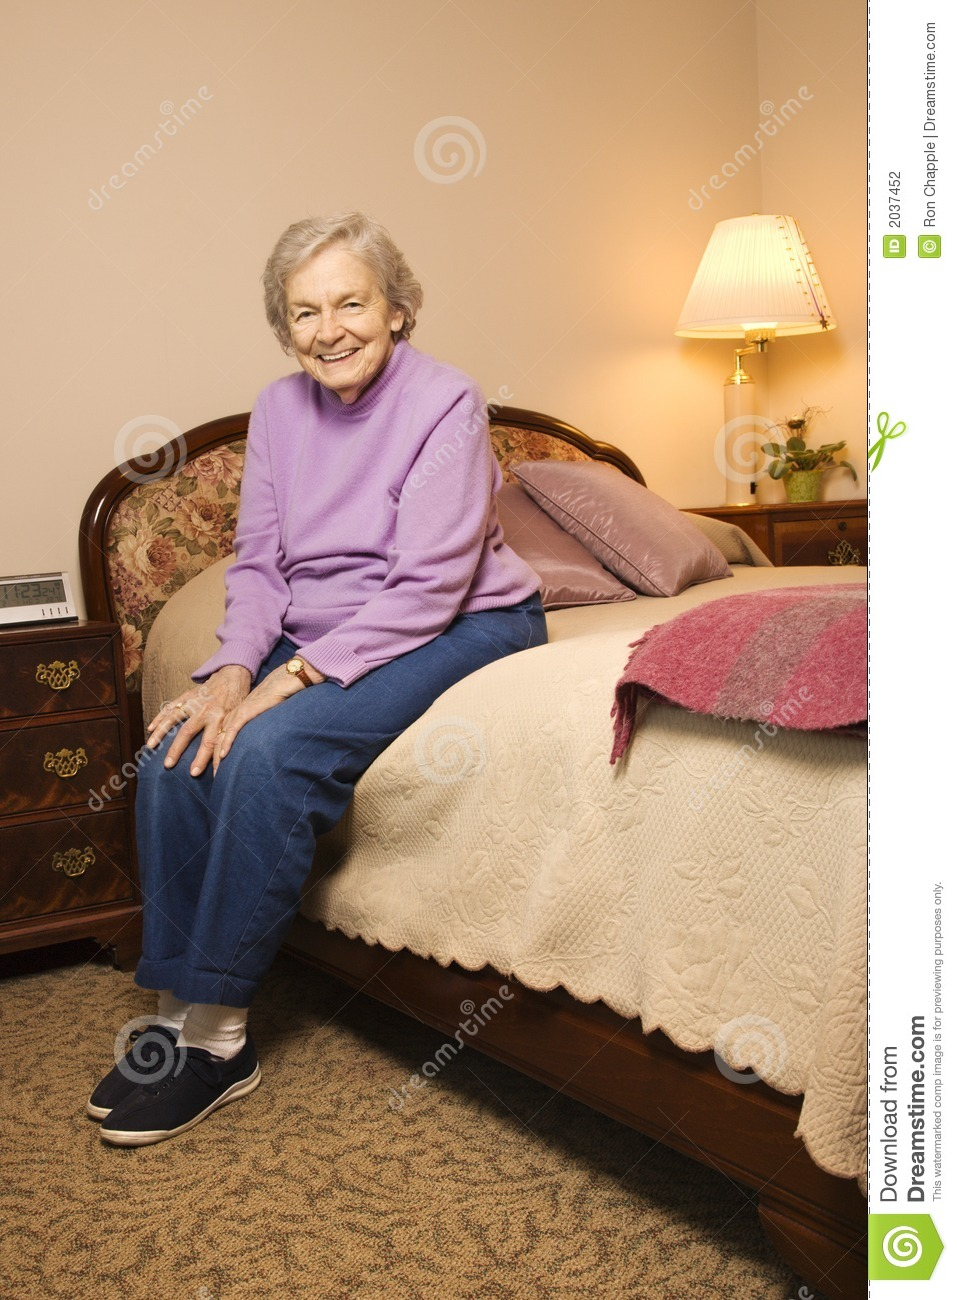 Elderly Caucasian Woman In Bedroom Stock Photo  Image of